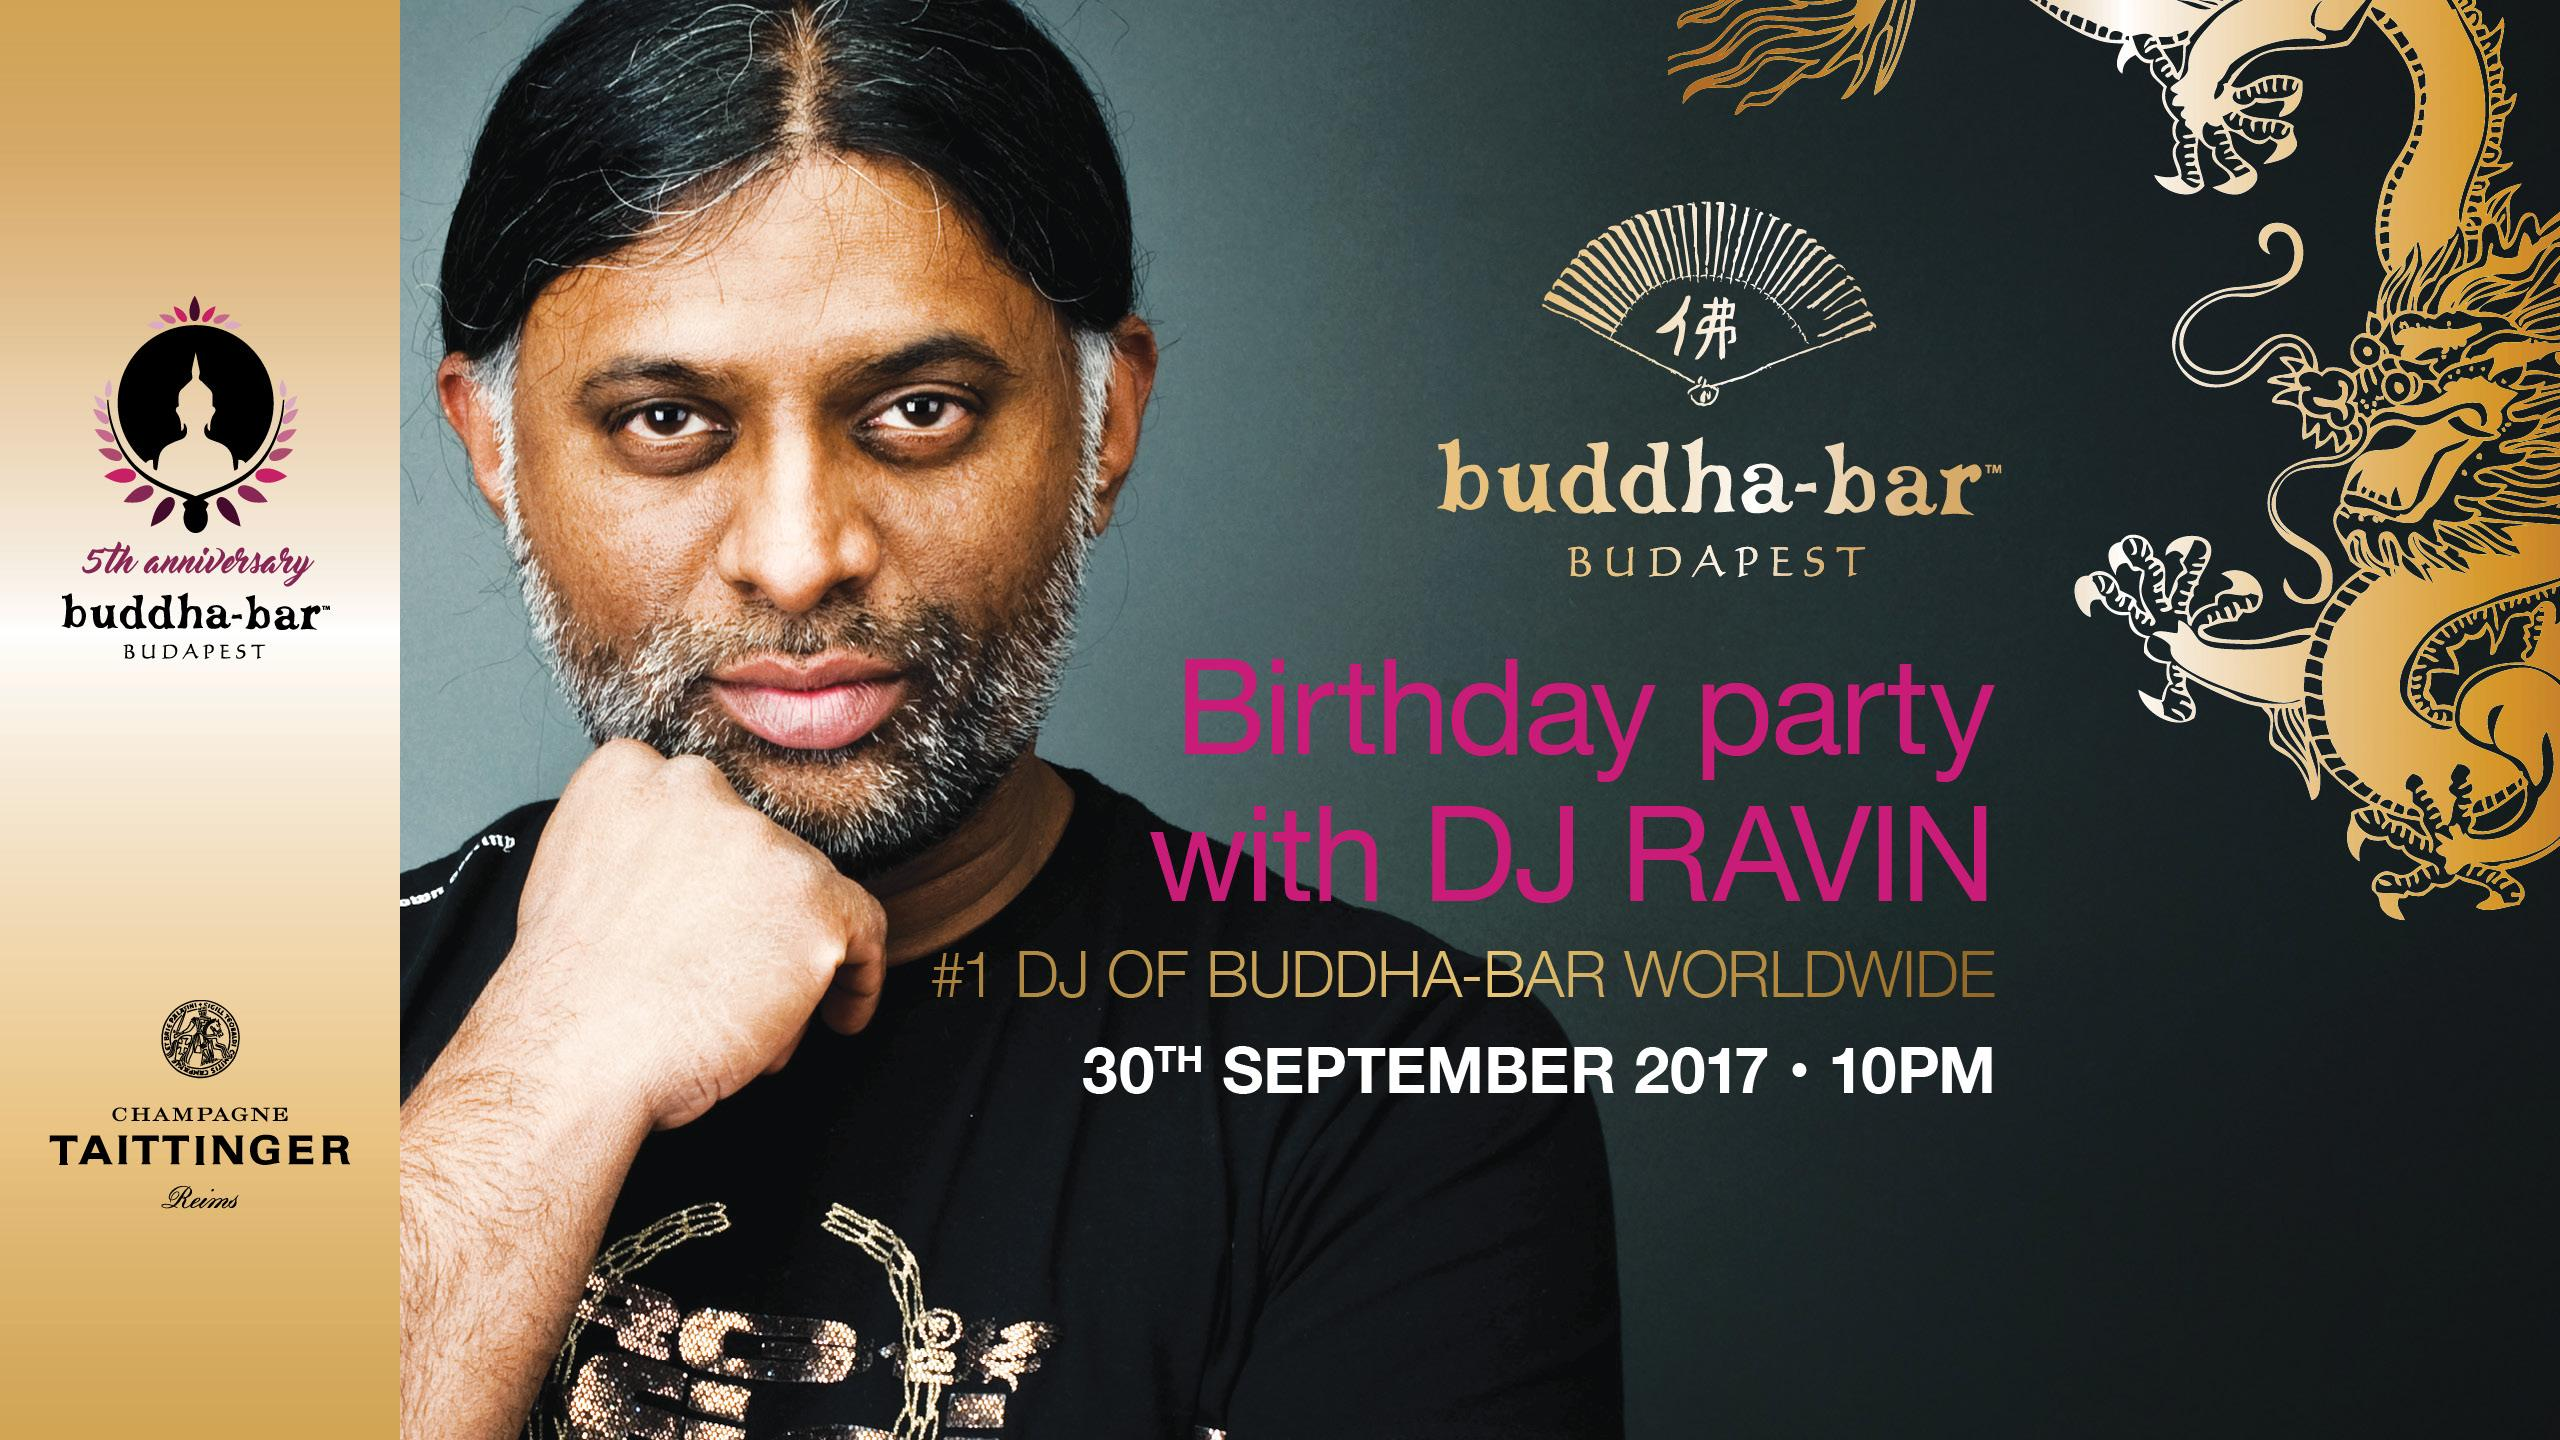 Celebrate Buddha-Bar Budapest's 5th Birthday With DJ RAVIN, 30 September